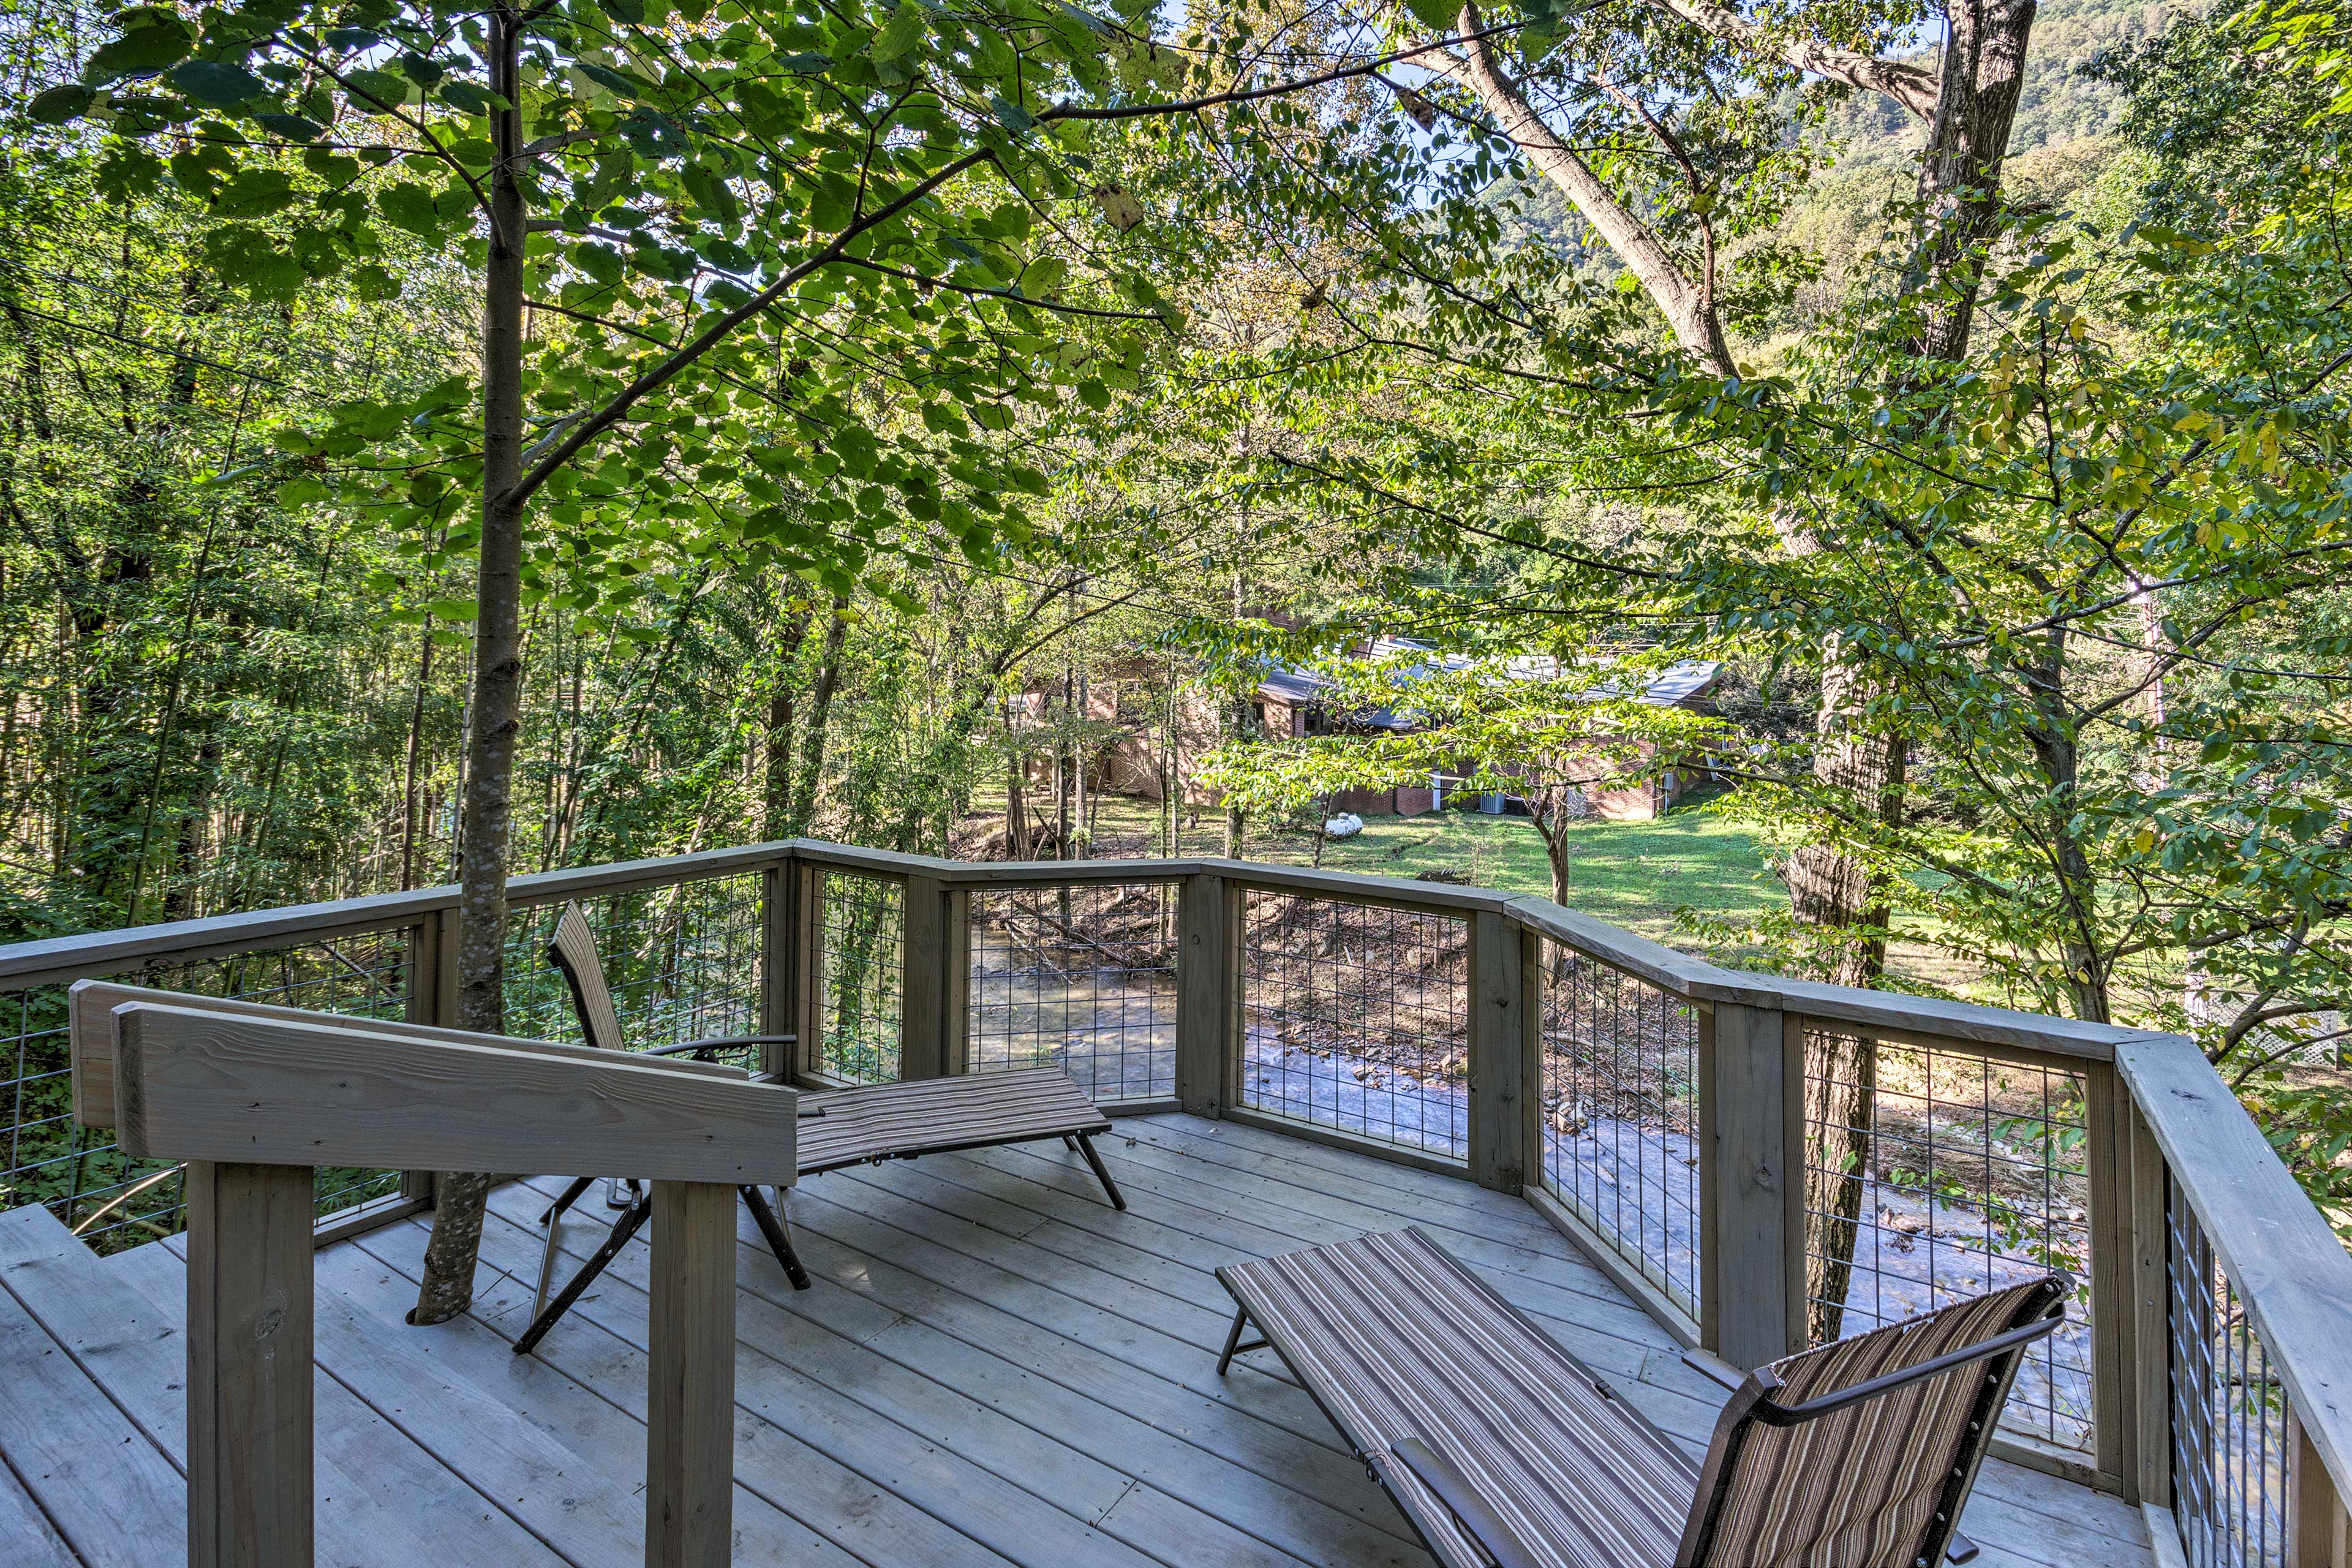 This cozy bungalow sits right on the edge of bubbling Pacolet River.